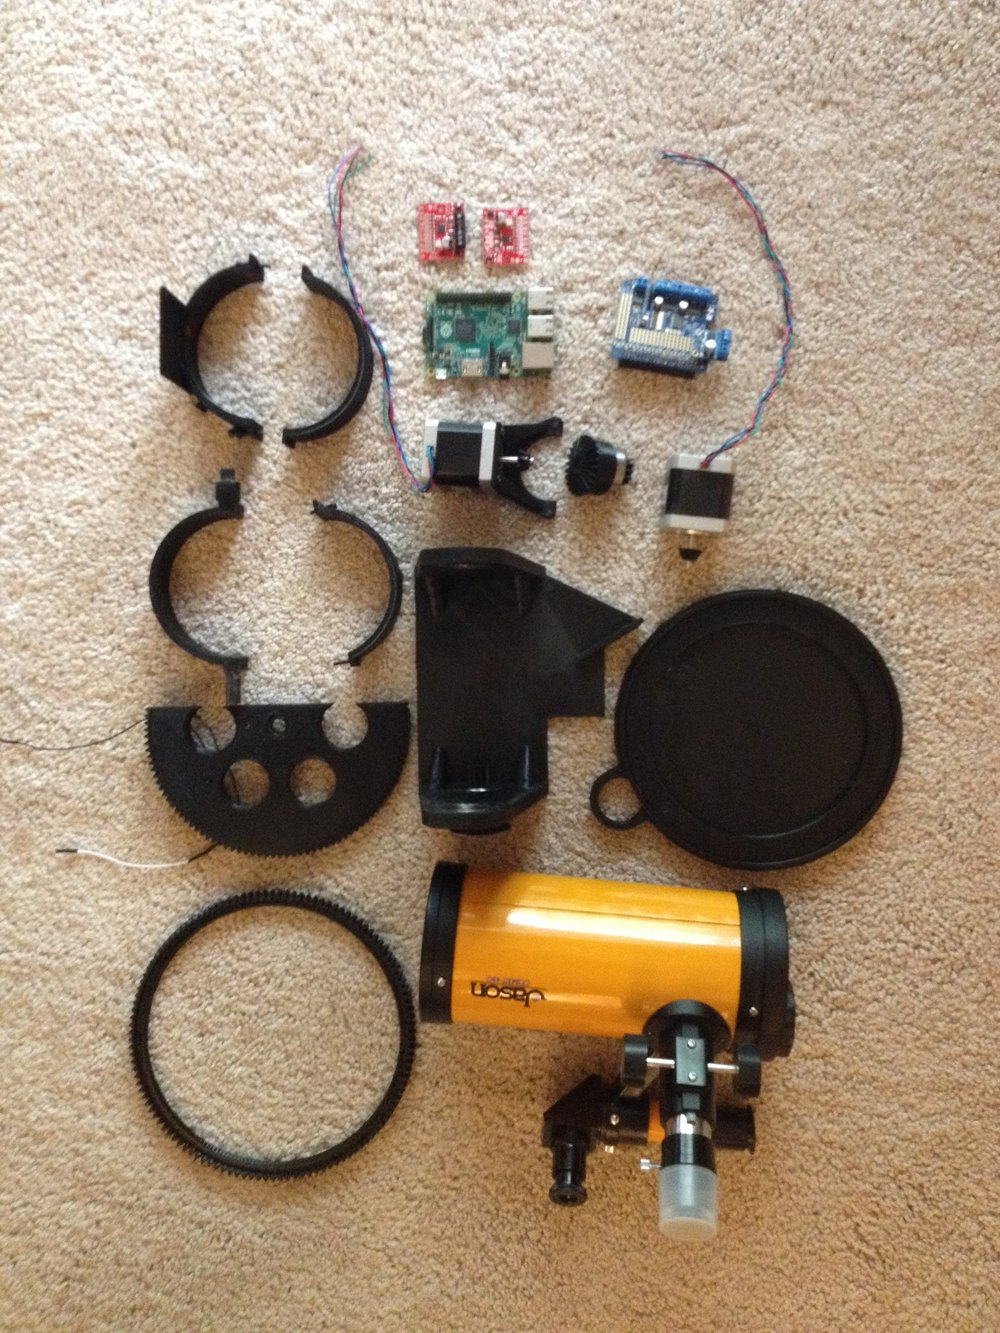 The telescope gimbal, mostly disassembled